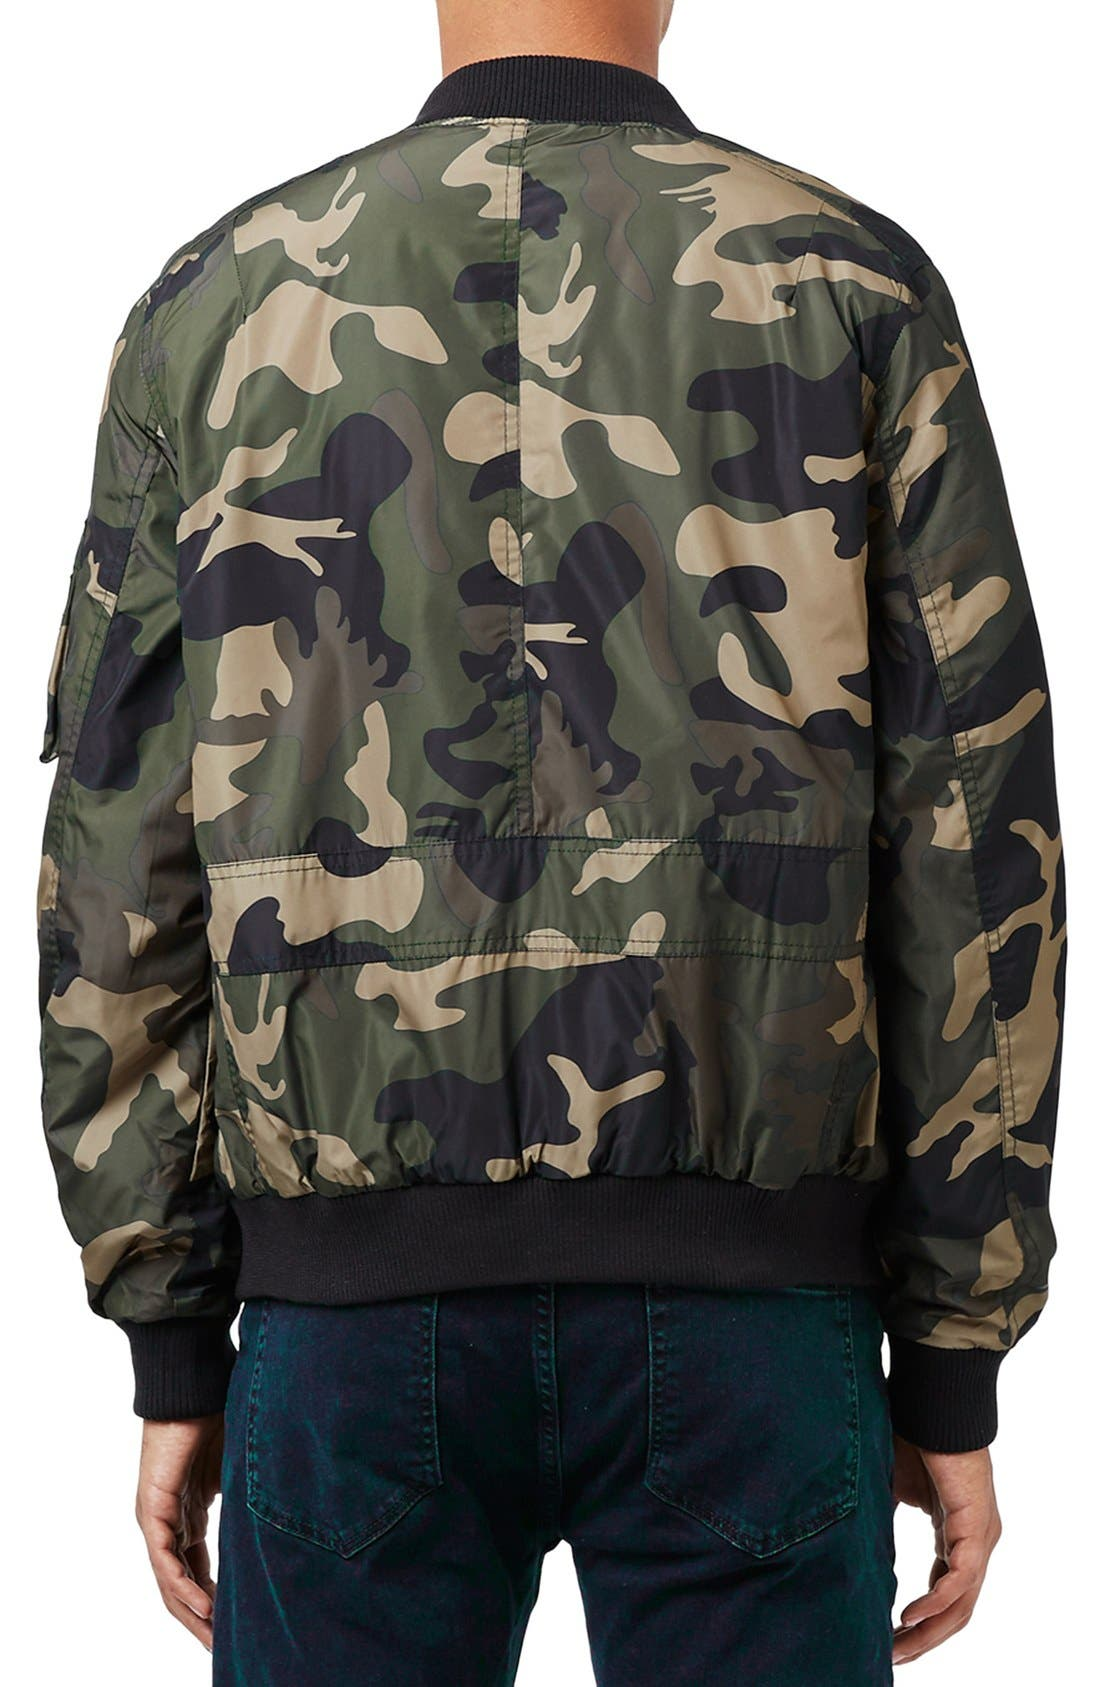 Camo Print MA-1 Bomber Jacket,                             Alternate thumbnail 5, color,                             300